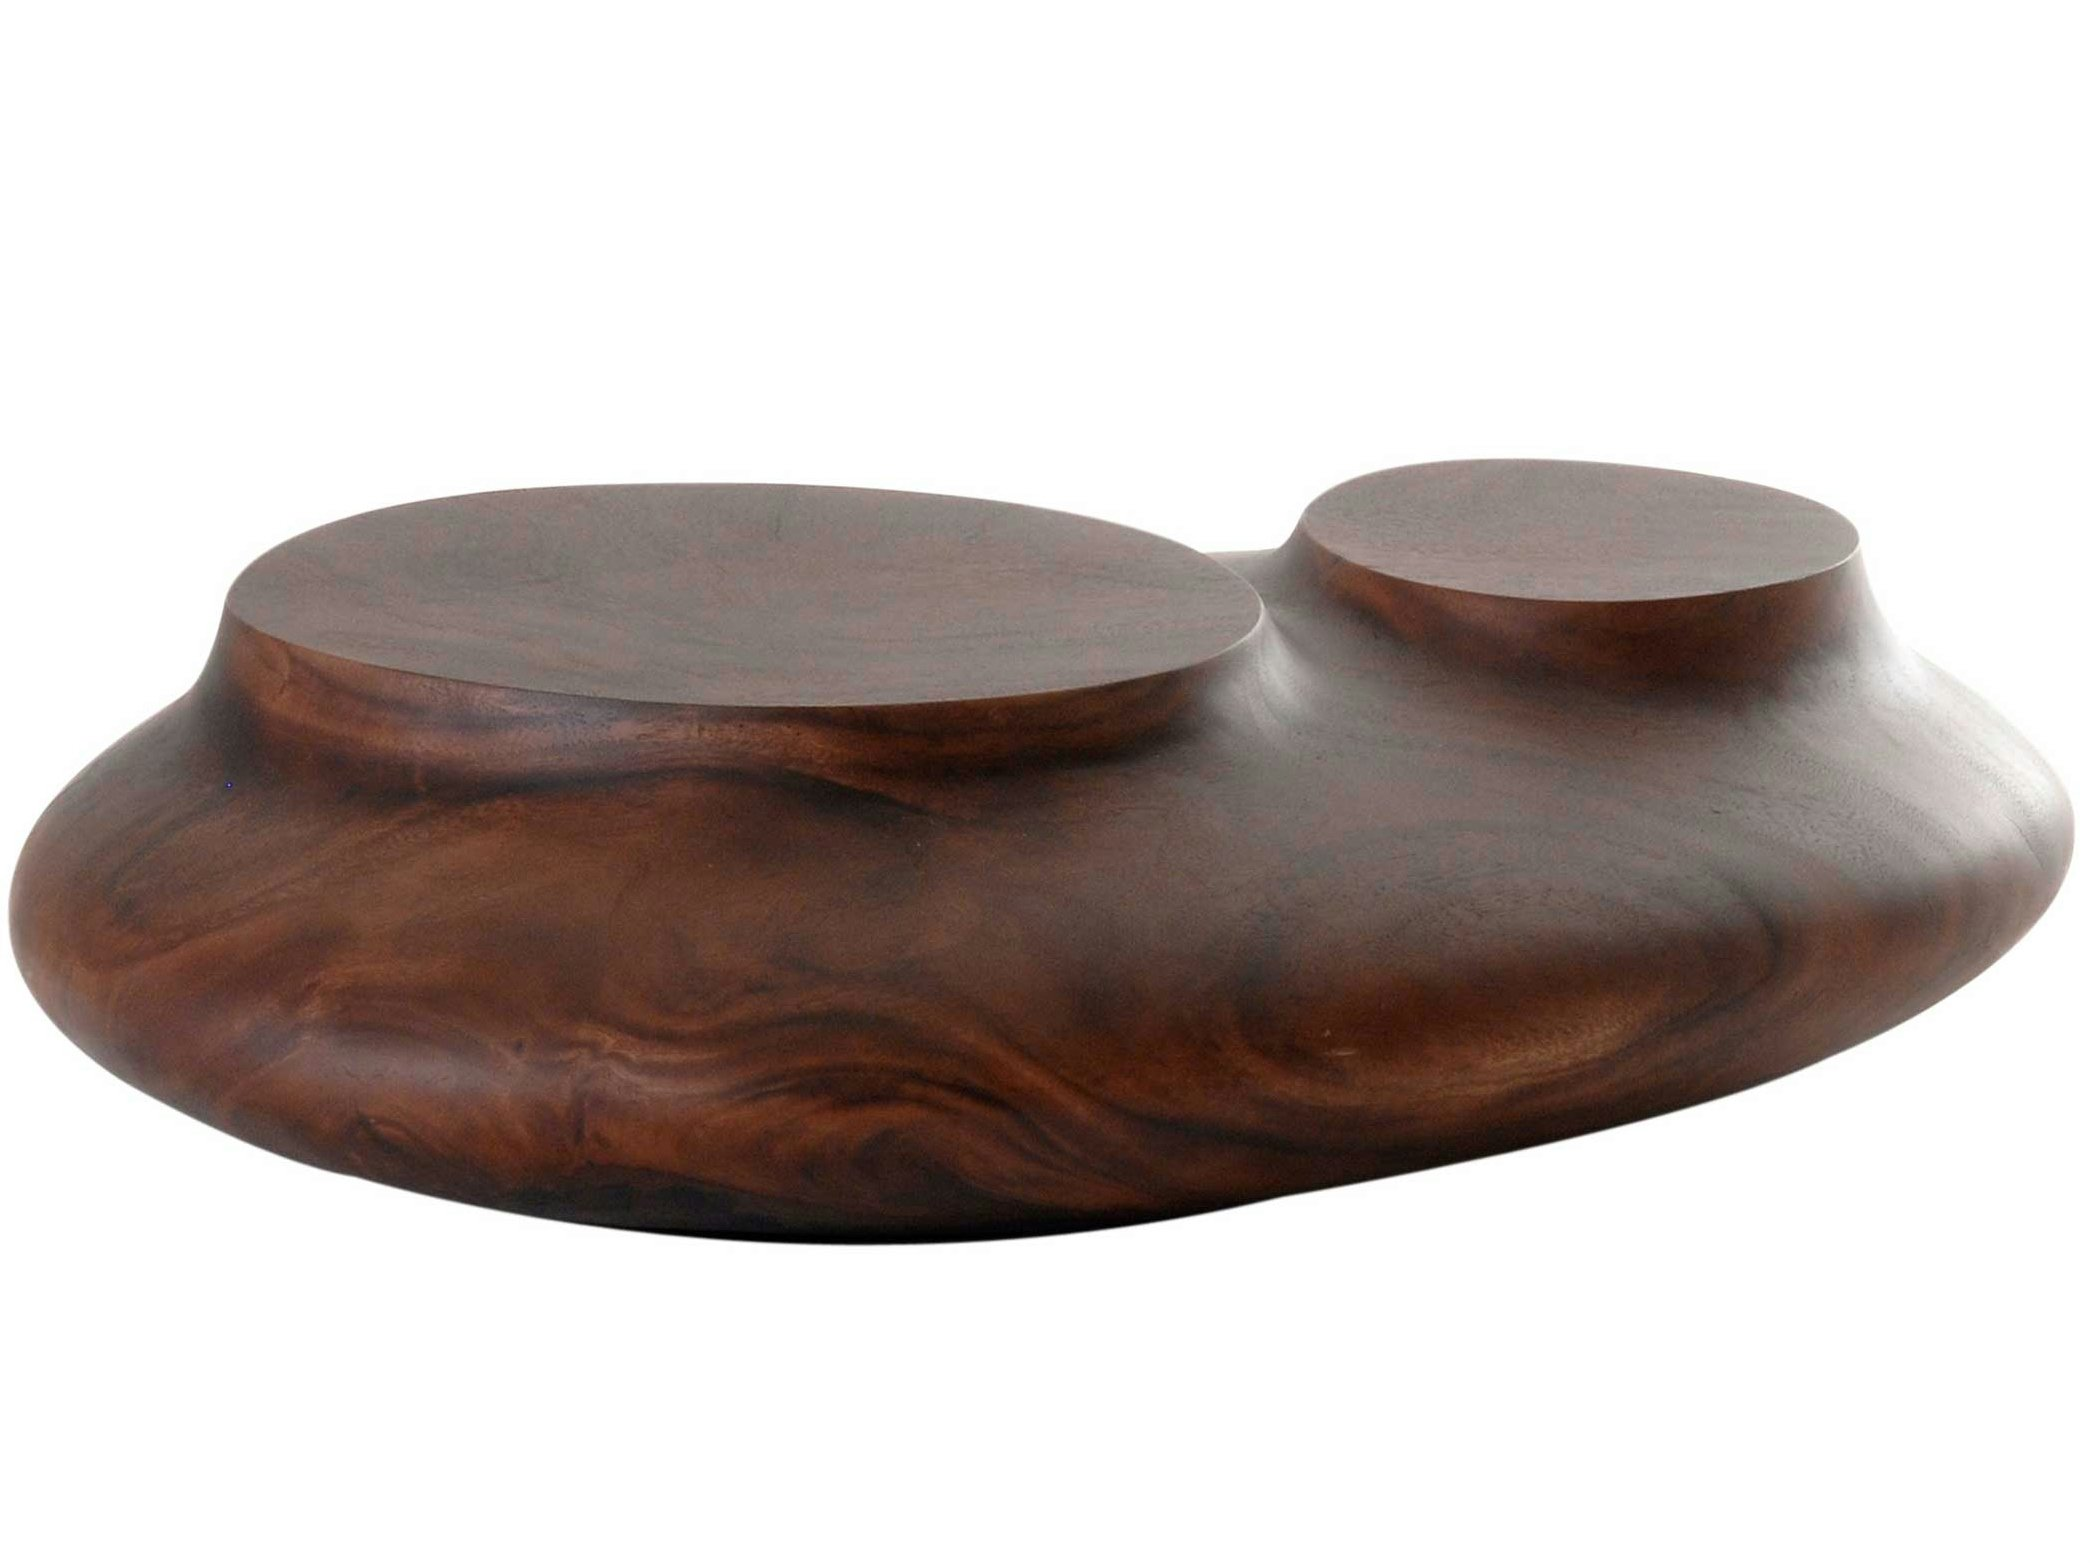 Design Coffee Table For Living Room Cute Cut By Roche Bobois Design C Dric Ragot